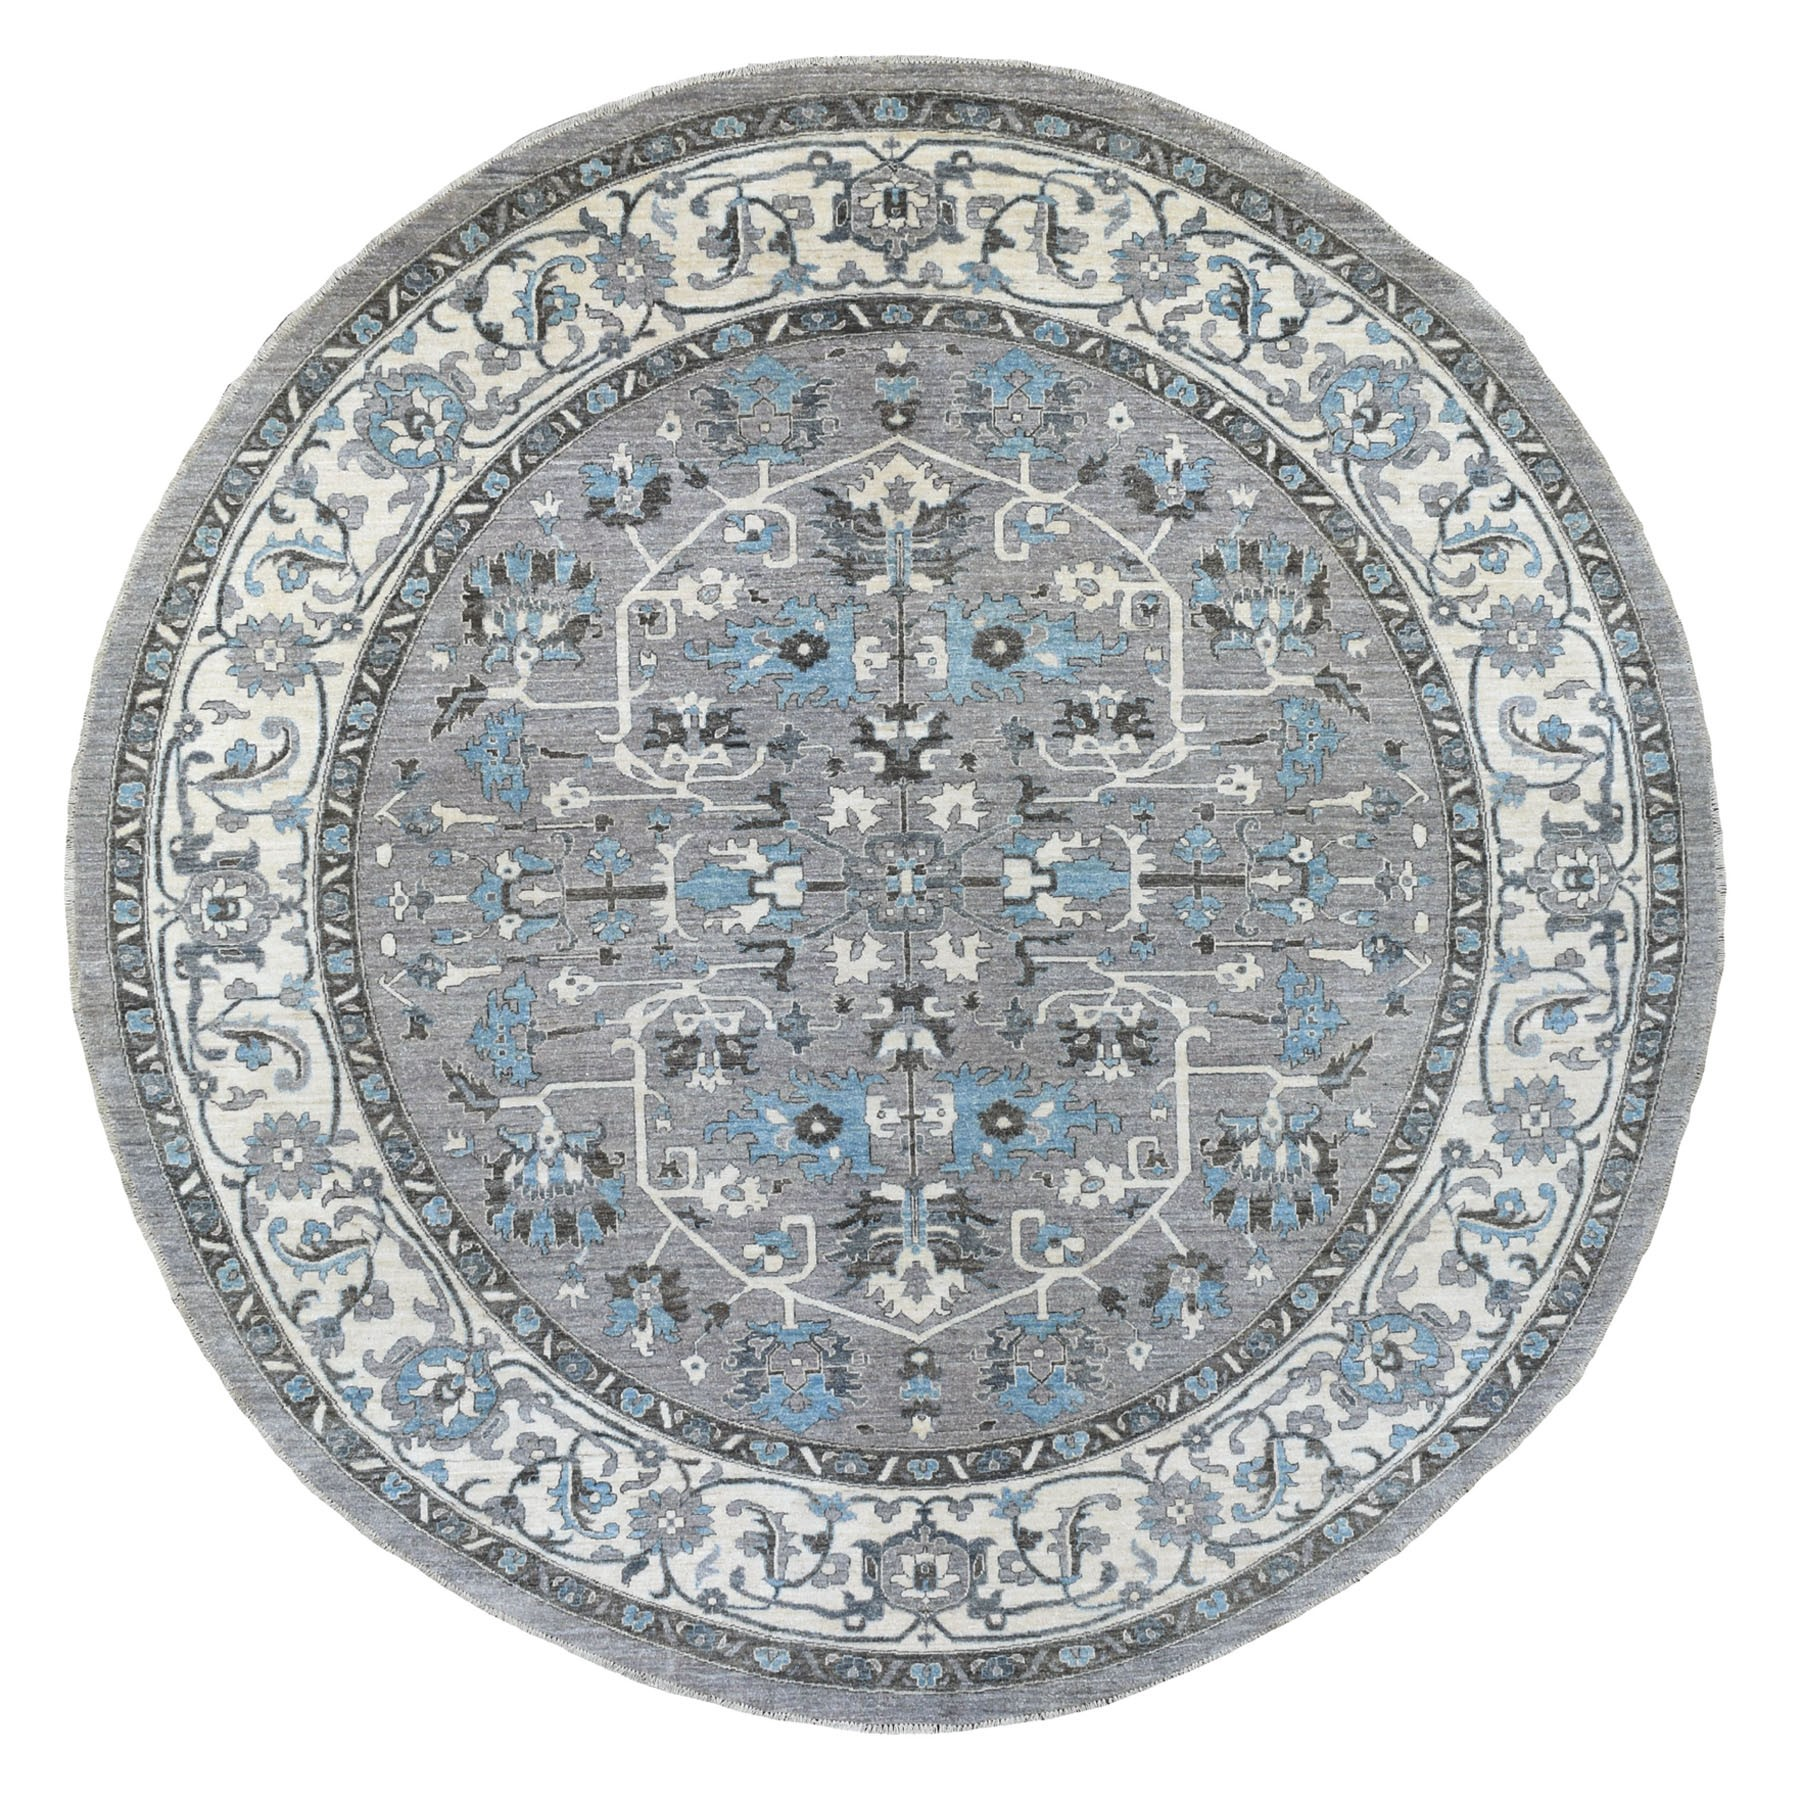 10'x10' Gray Afghan Peshawar with Ziegler Mahal Design Handspun Wool Hand Knotted Round Oriental Rug